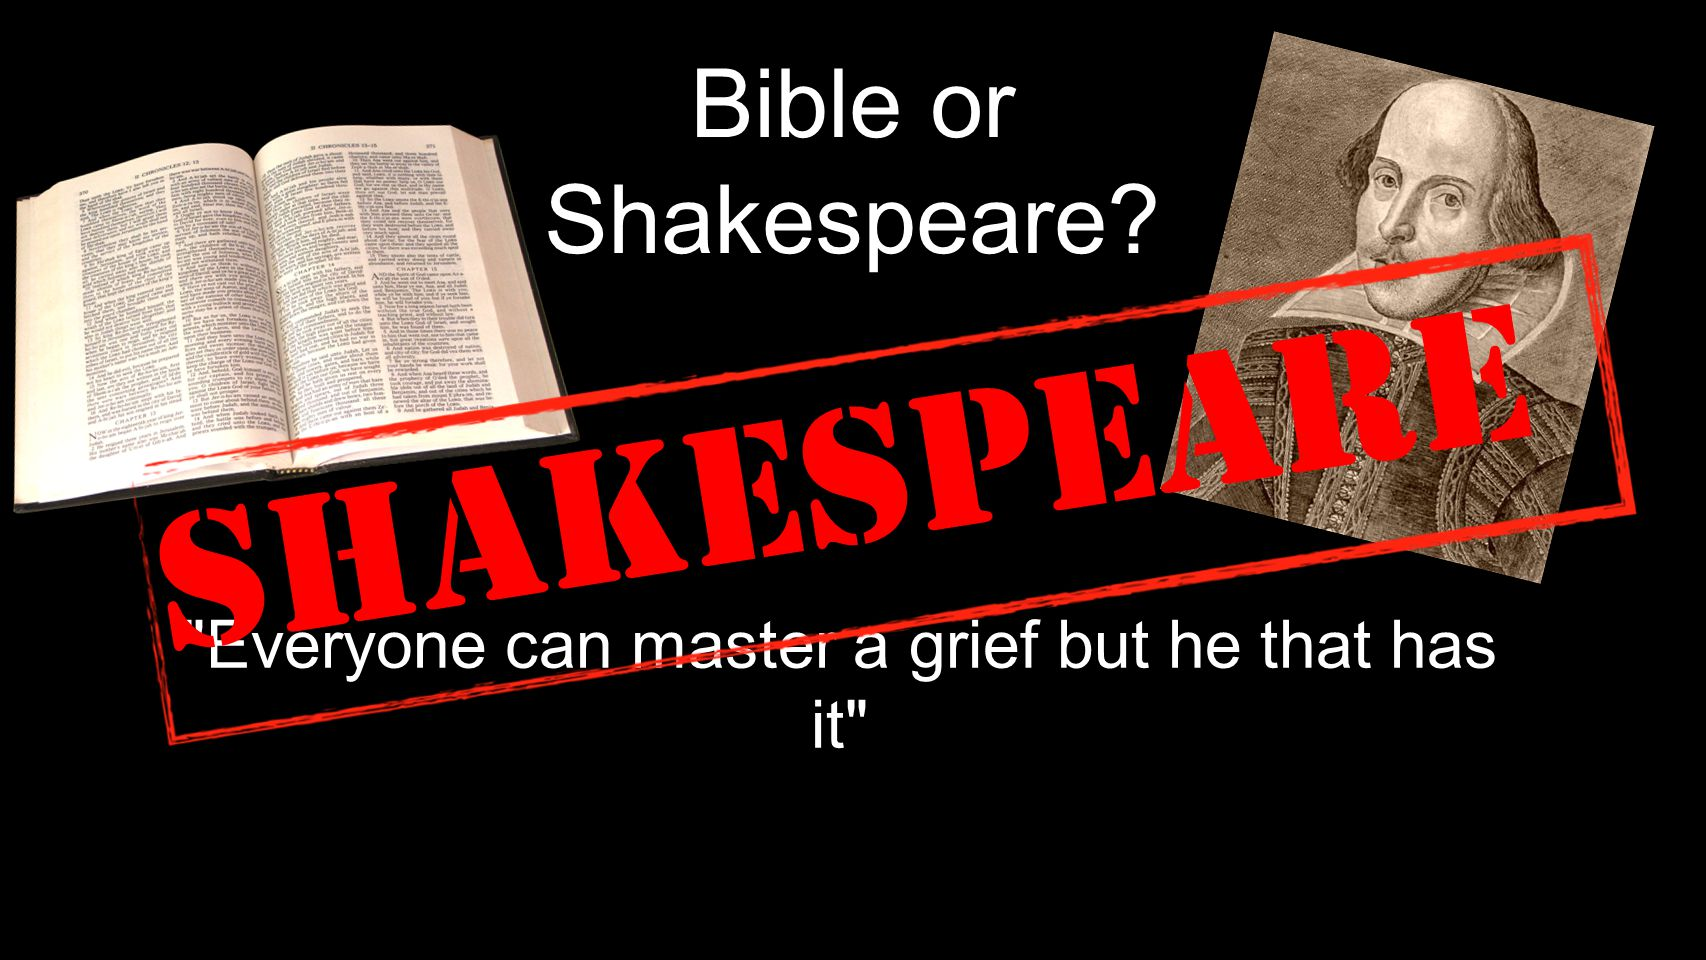 Bible or Shakespeare Everyone can master a grief but he that has it Shakespeare